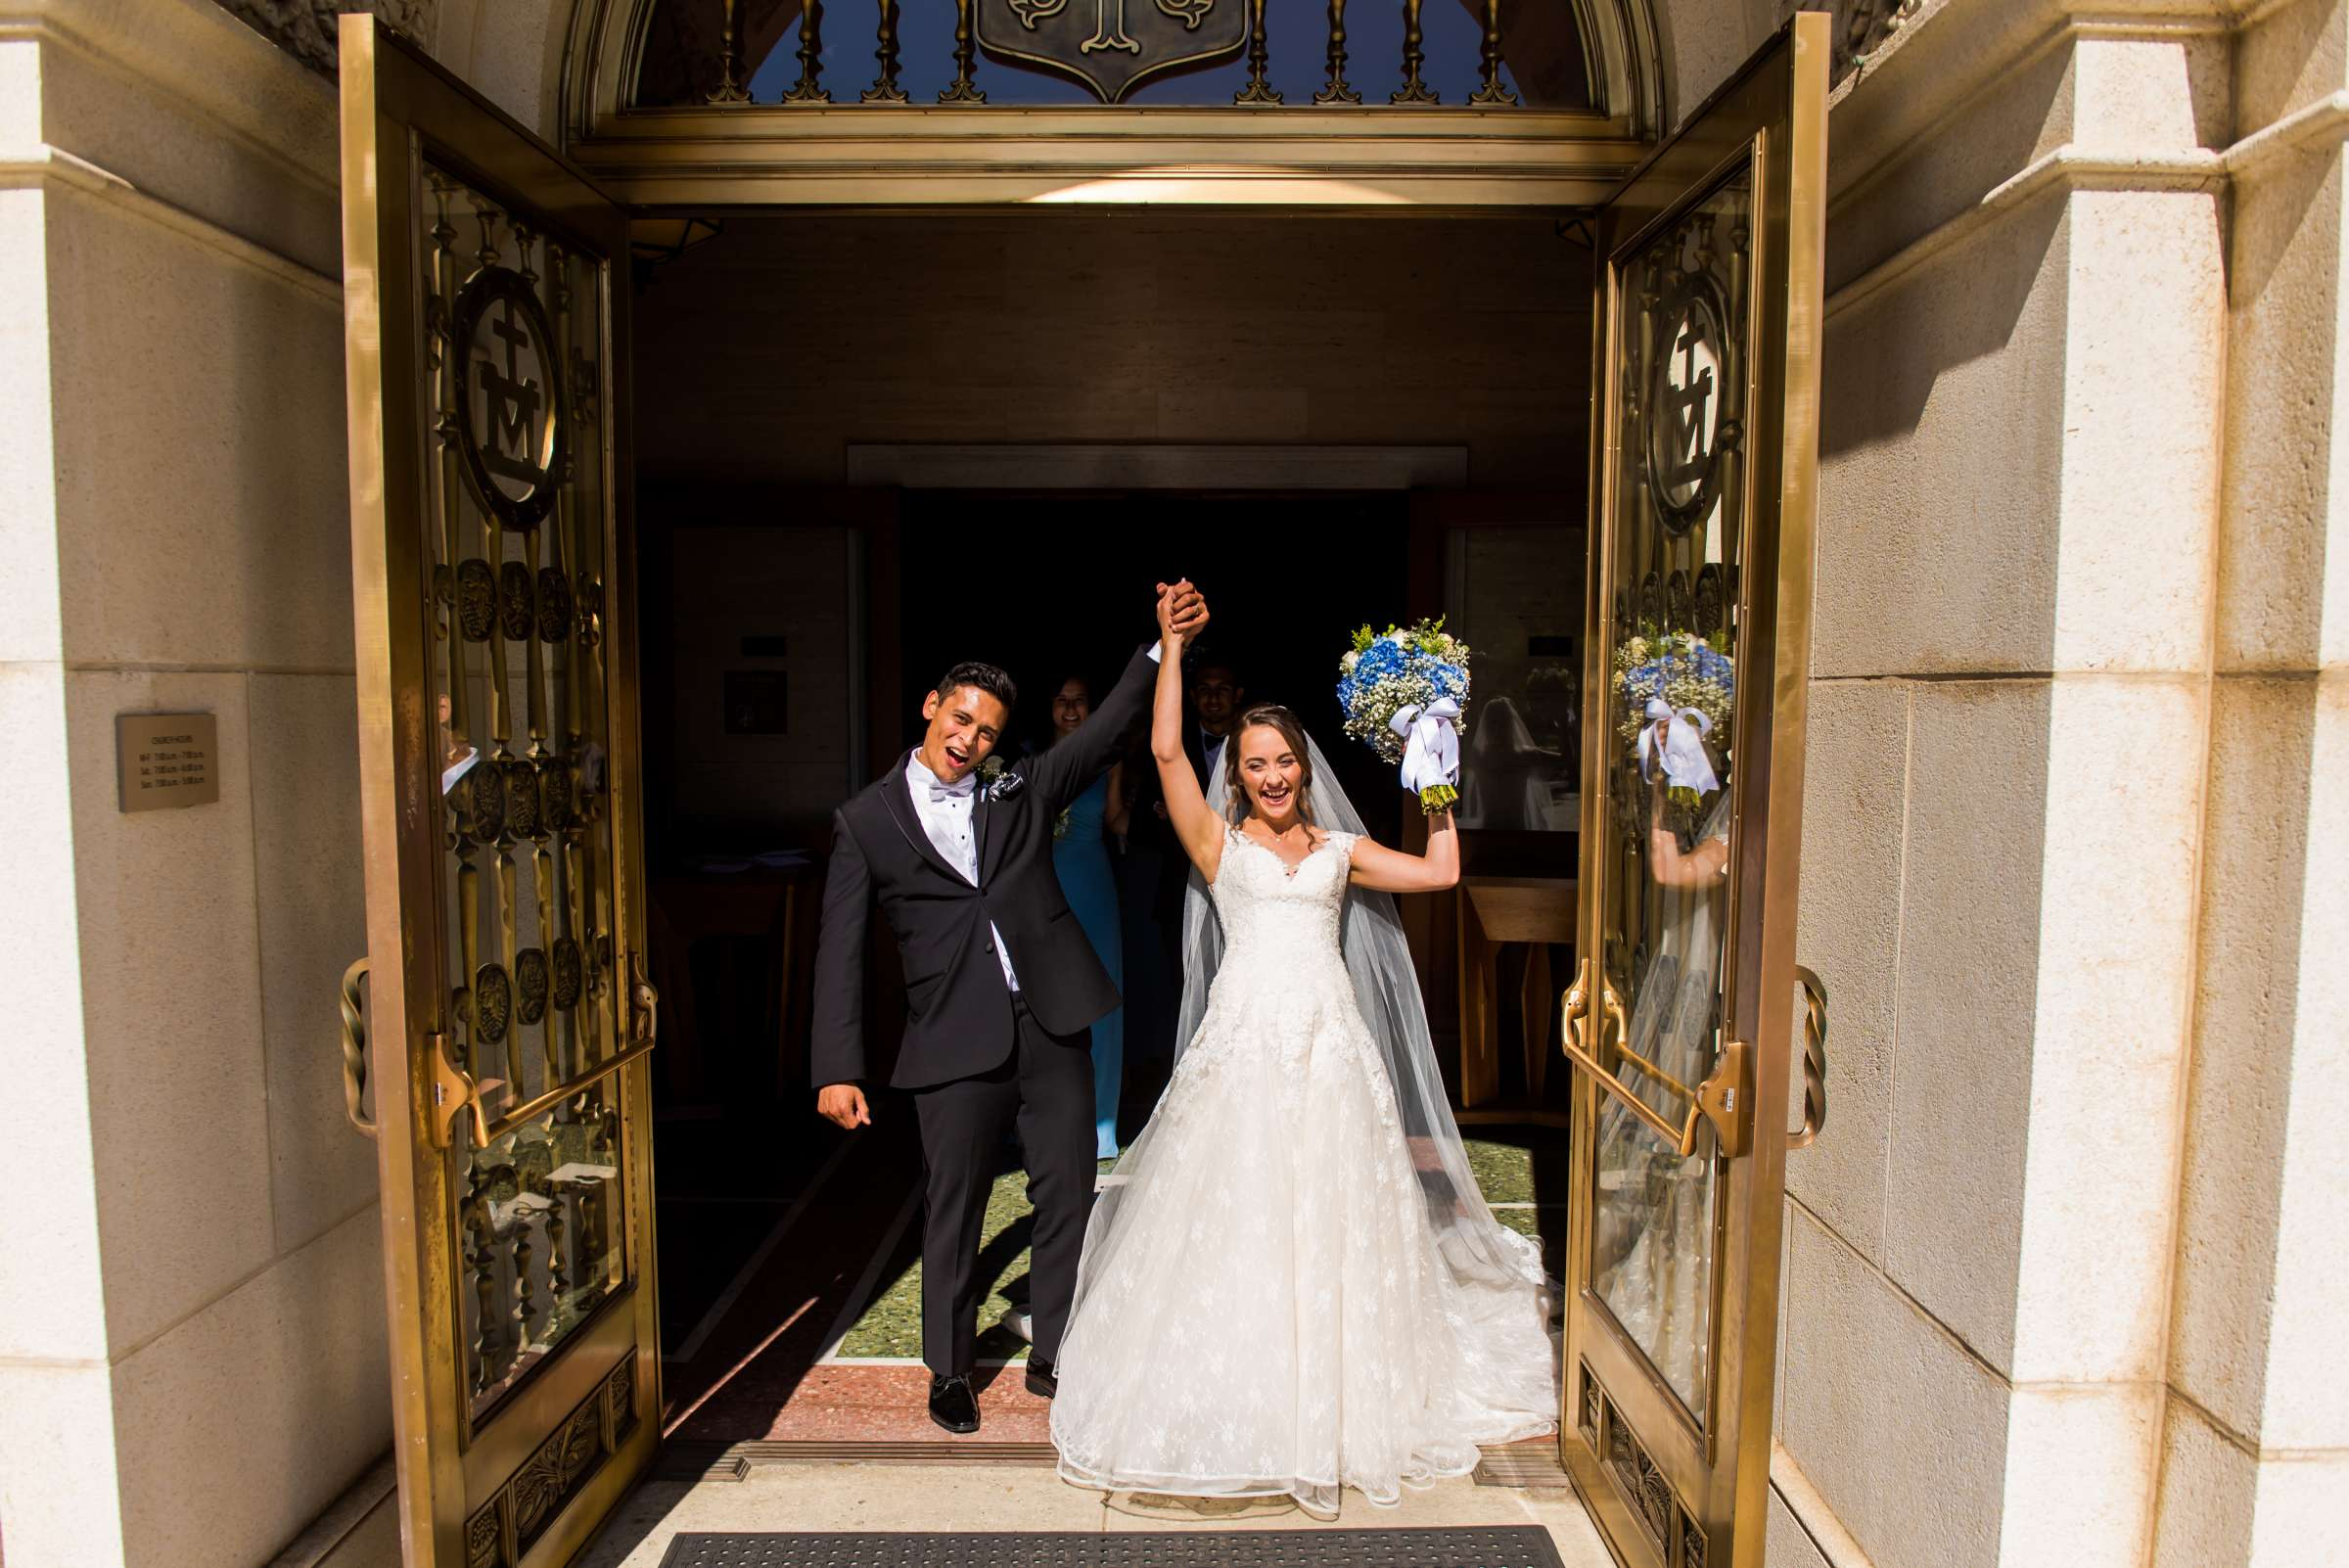 The Immaculata Wedding, Arianna and Jonah Wedding Photo #134 by True Photography